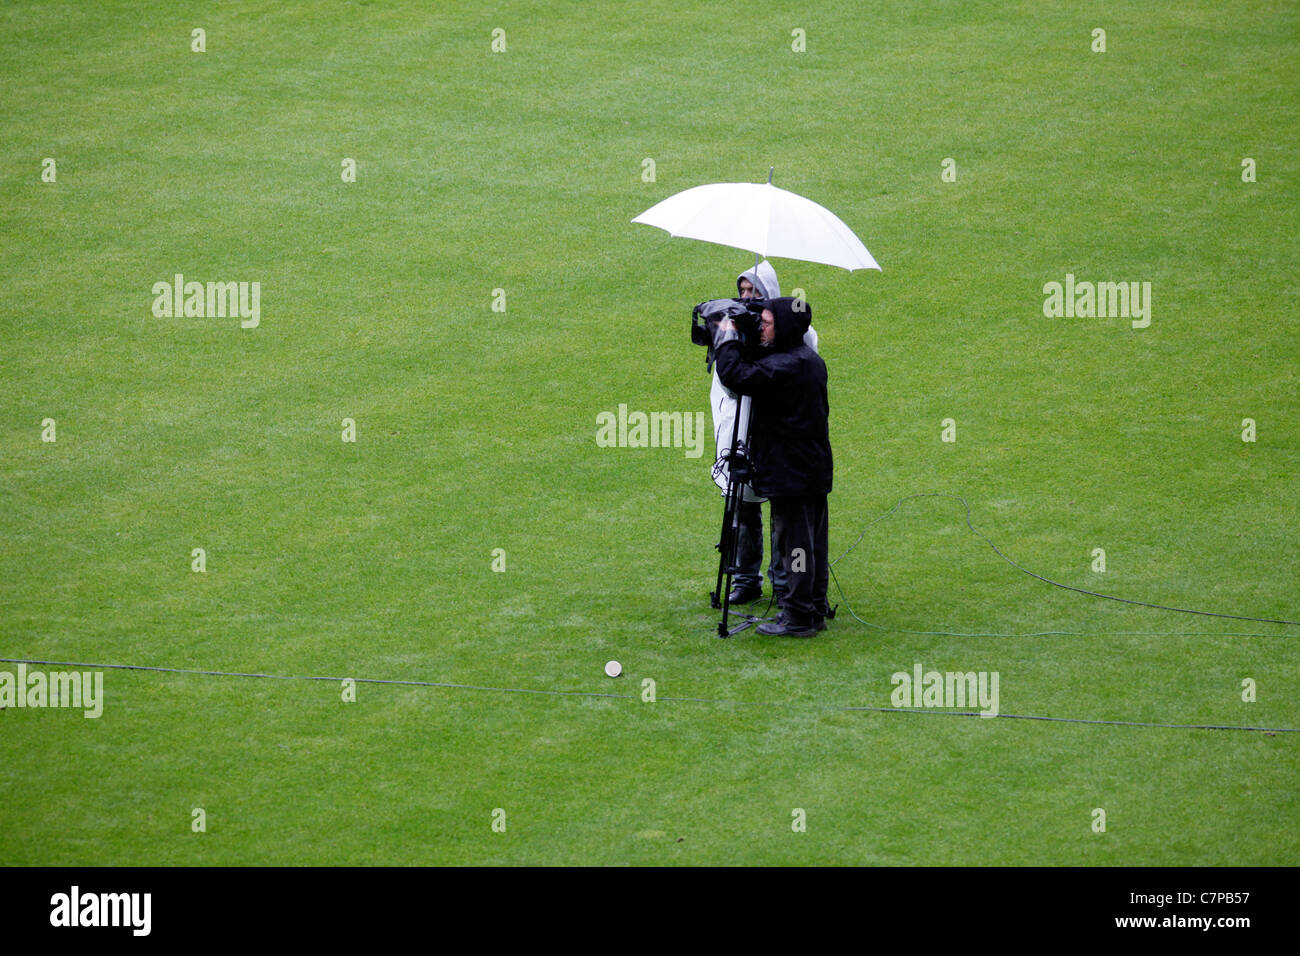 Television camera team, during a live coverage of an event, standing in heavy rain under an umbrella. Germany. - Stock Image